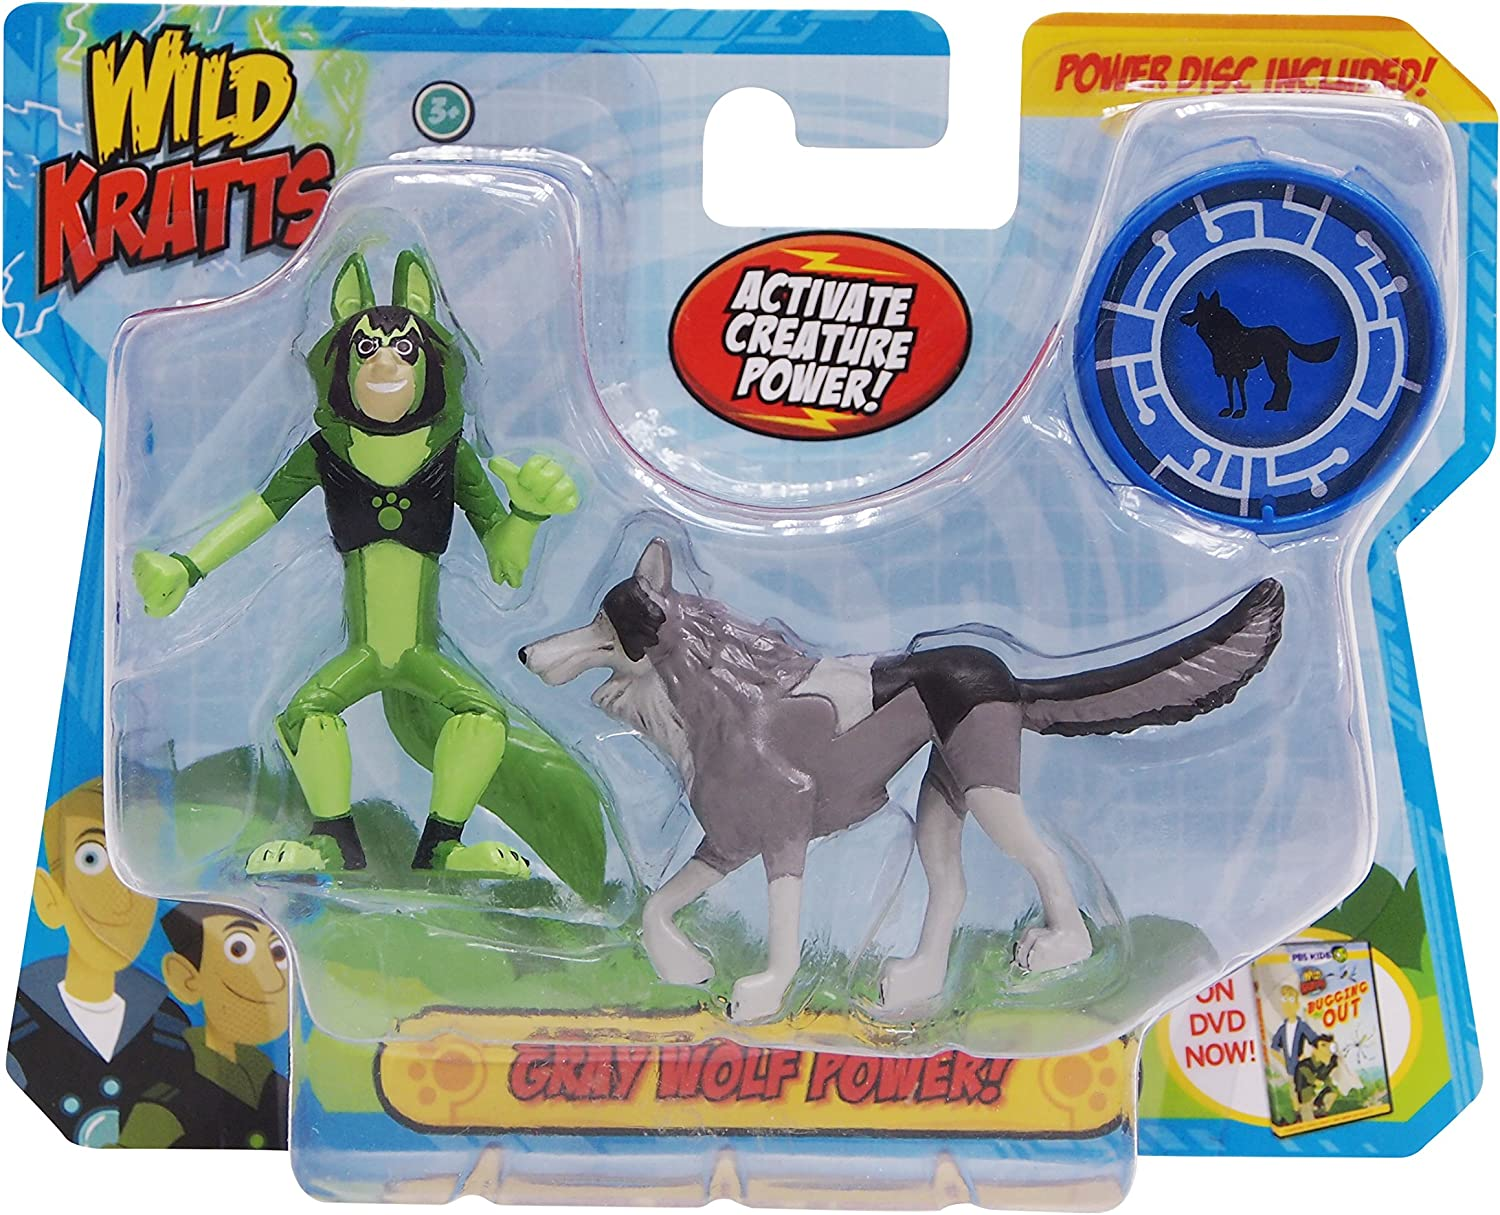 Wild Kratts Toys - 2 Pack Creature Power Action Figure Set - Gray Wolf Power